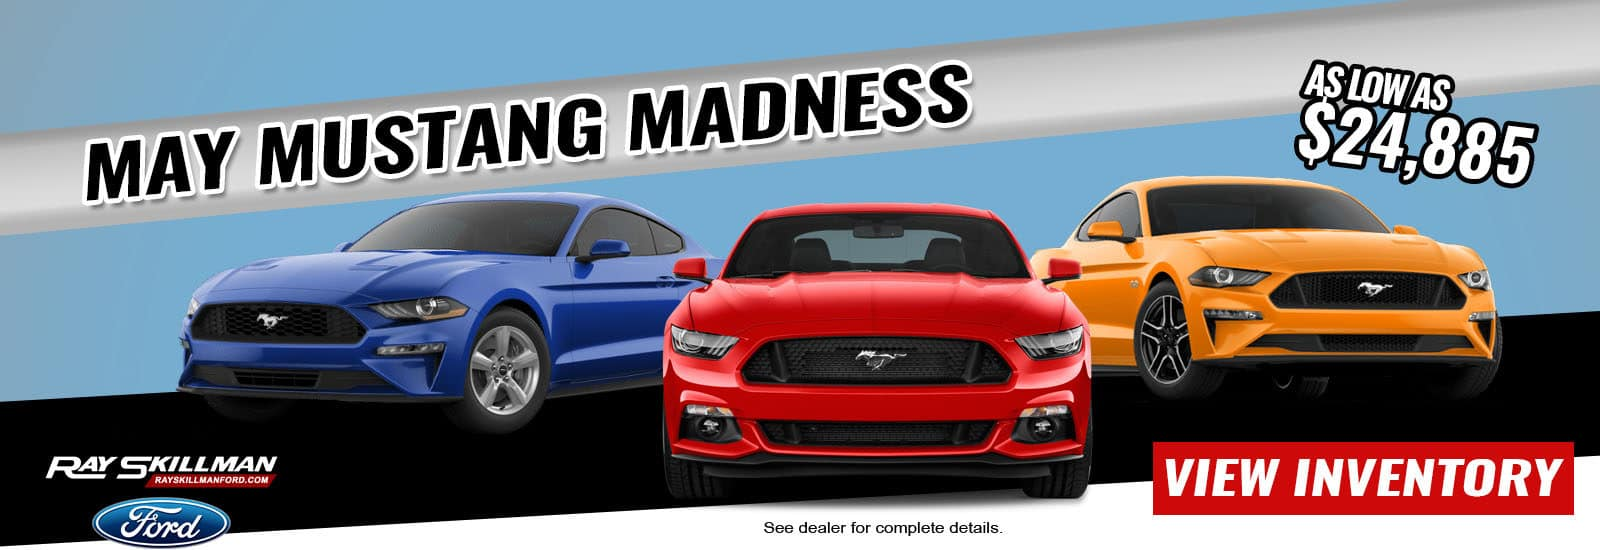 RSF_MayMustang_Madness_1600x550